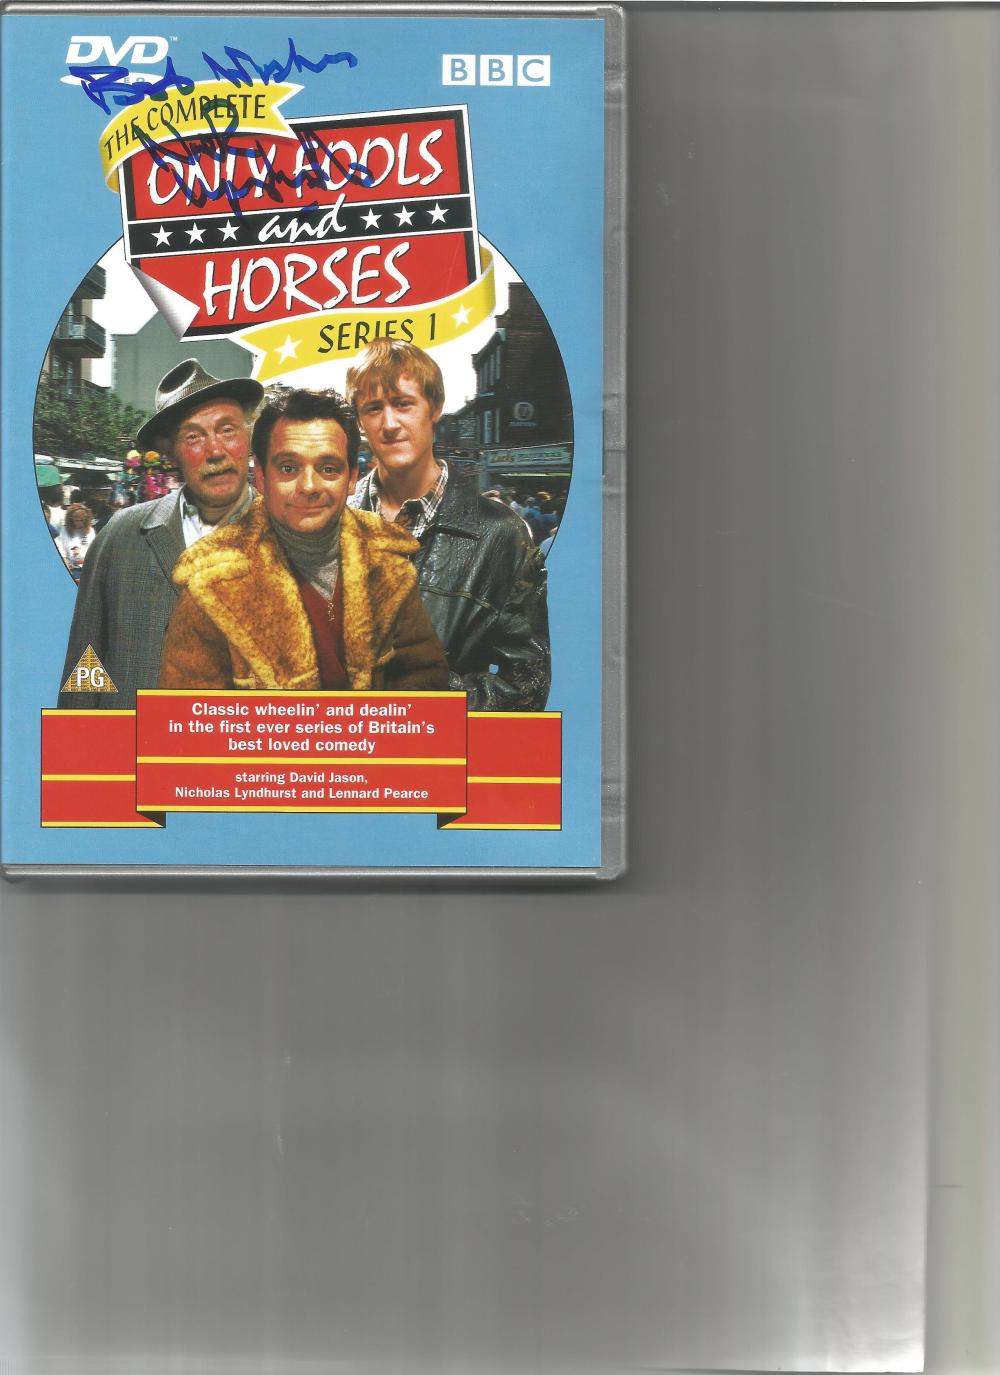 Nicholas Lyndhurst signed DVD sleeve for Only Fools and Horses series 1. DVD included. Good